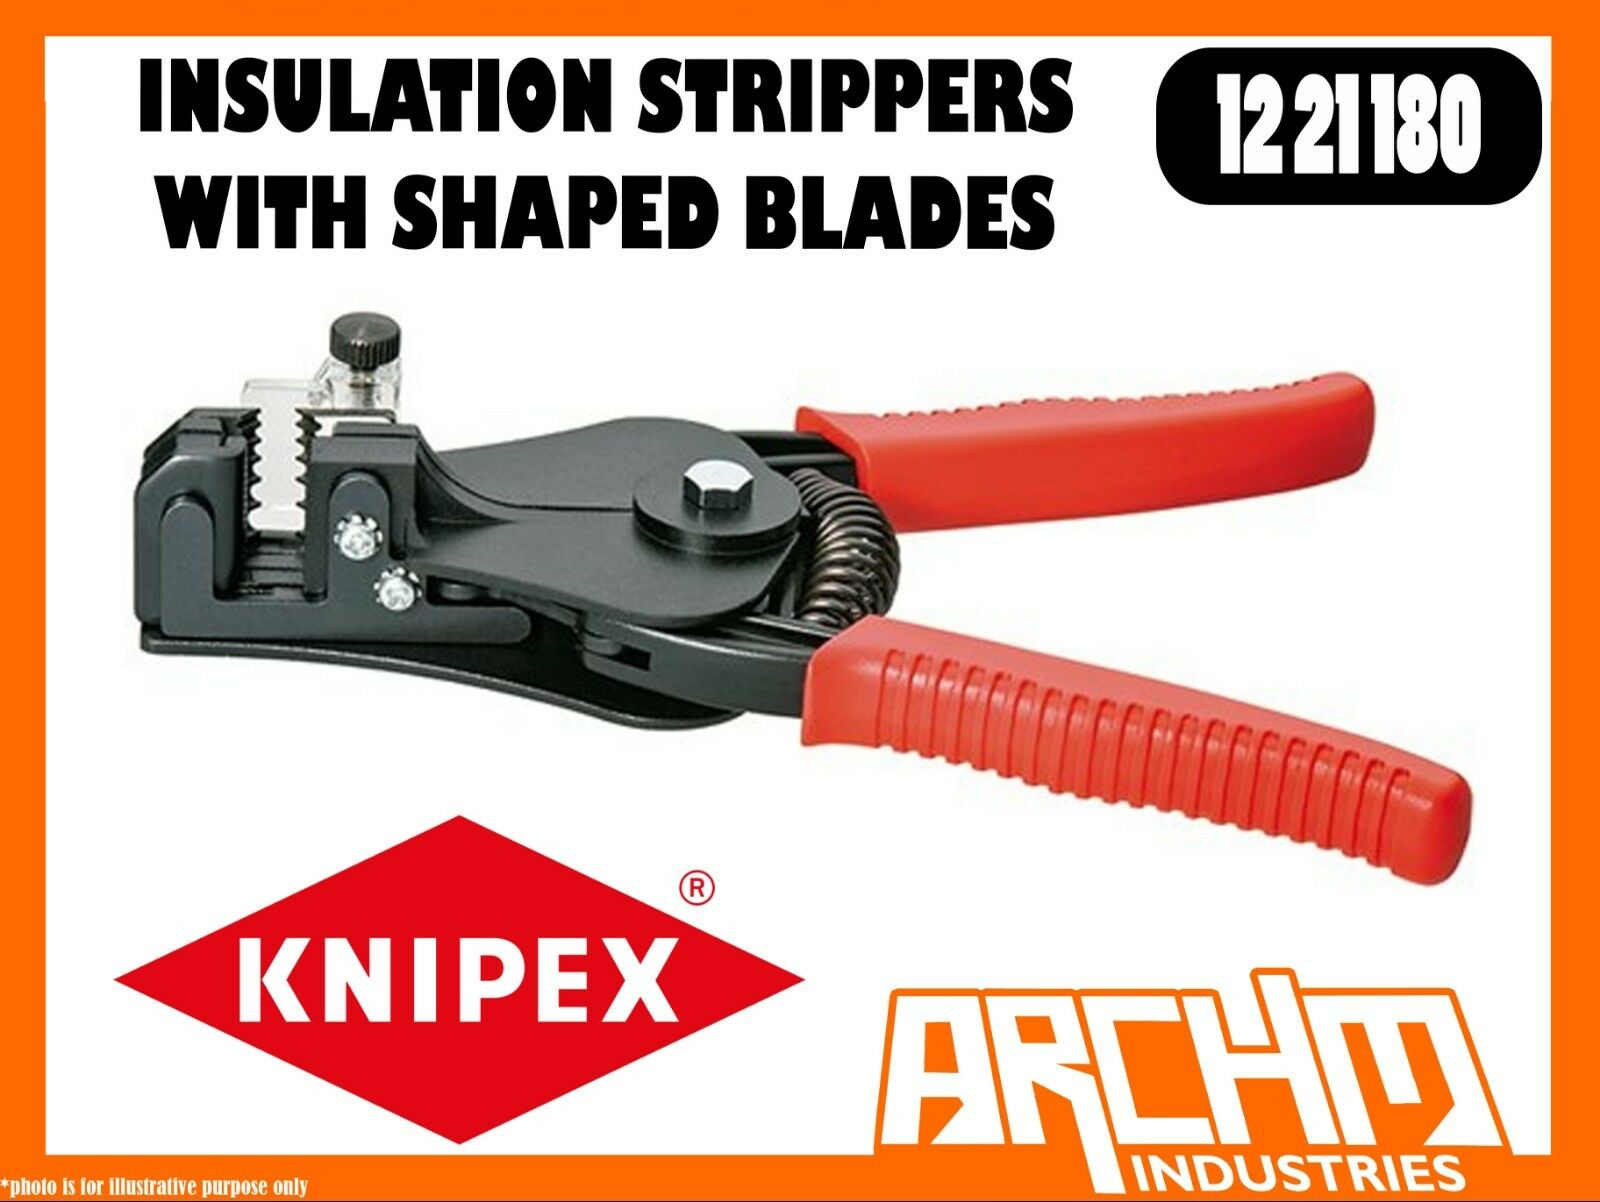 KNIPEX 1221180 - INSULATION STRIPPERS WITH SHAPED BLADES - 180MM - WIRES CABLES